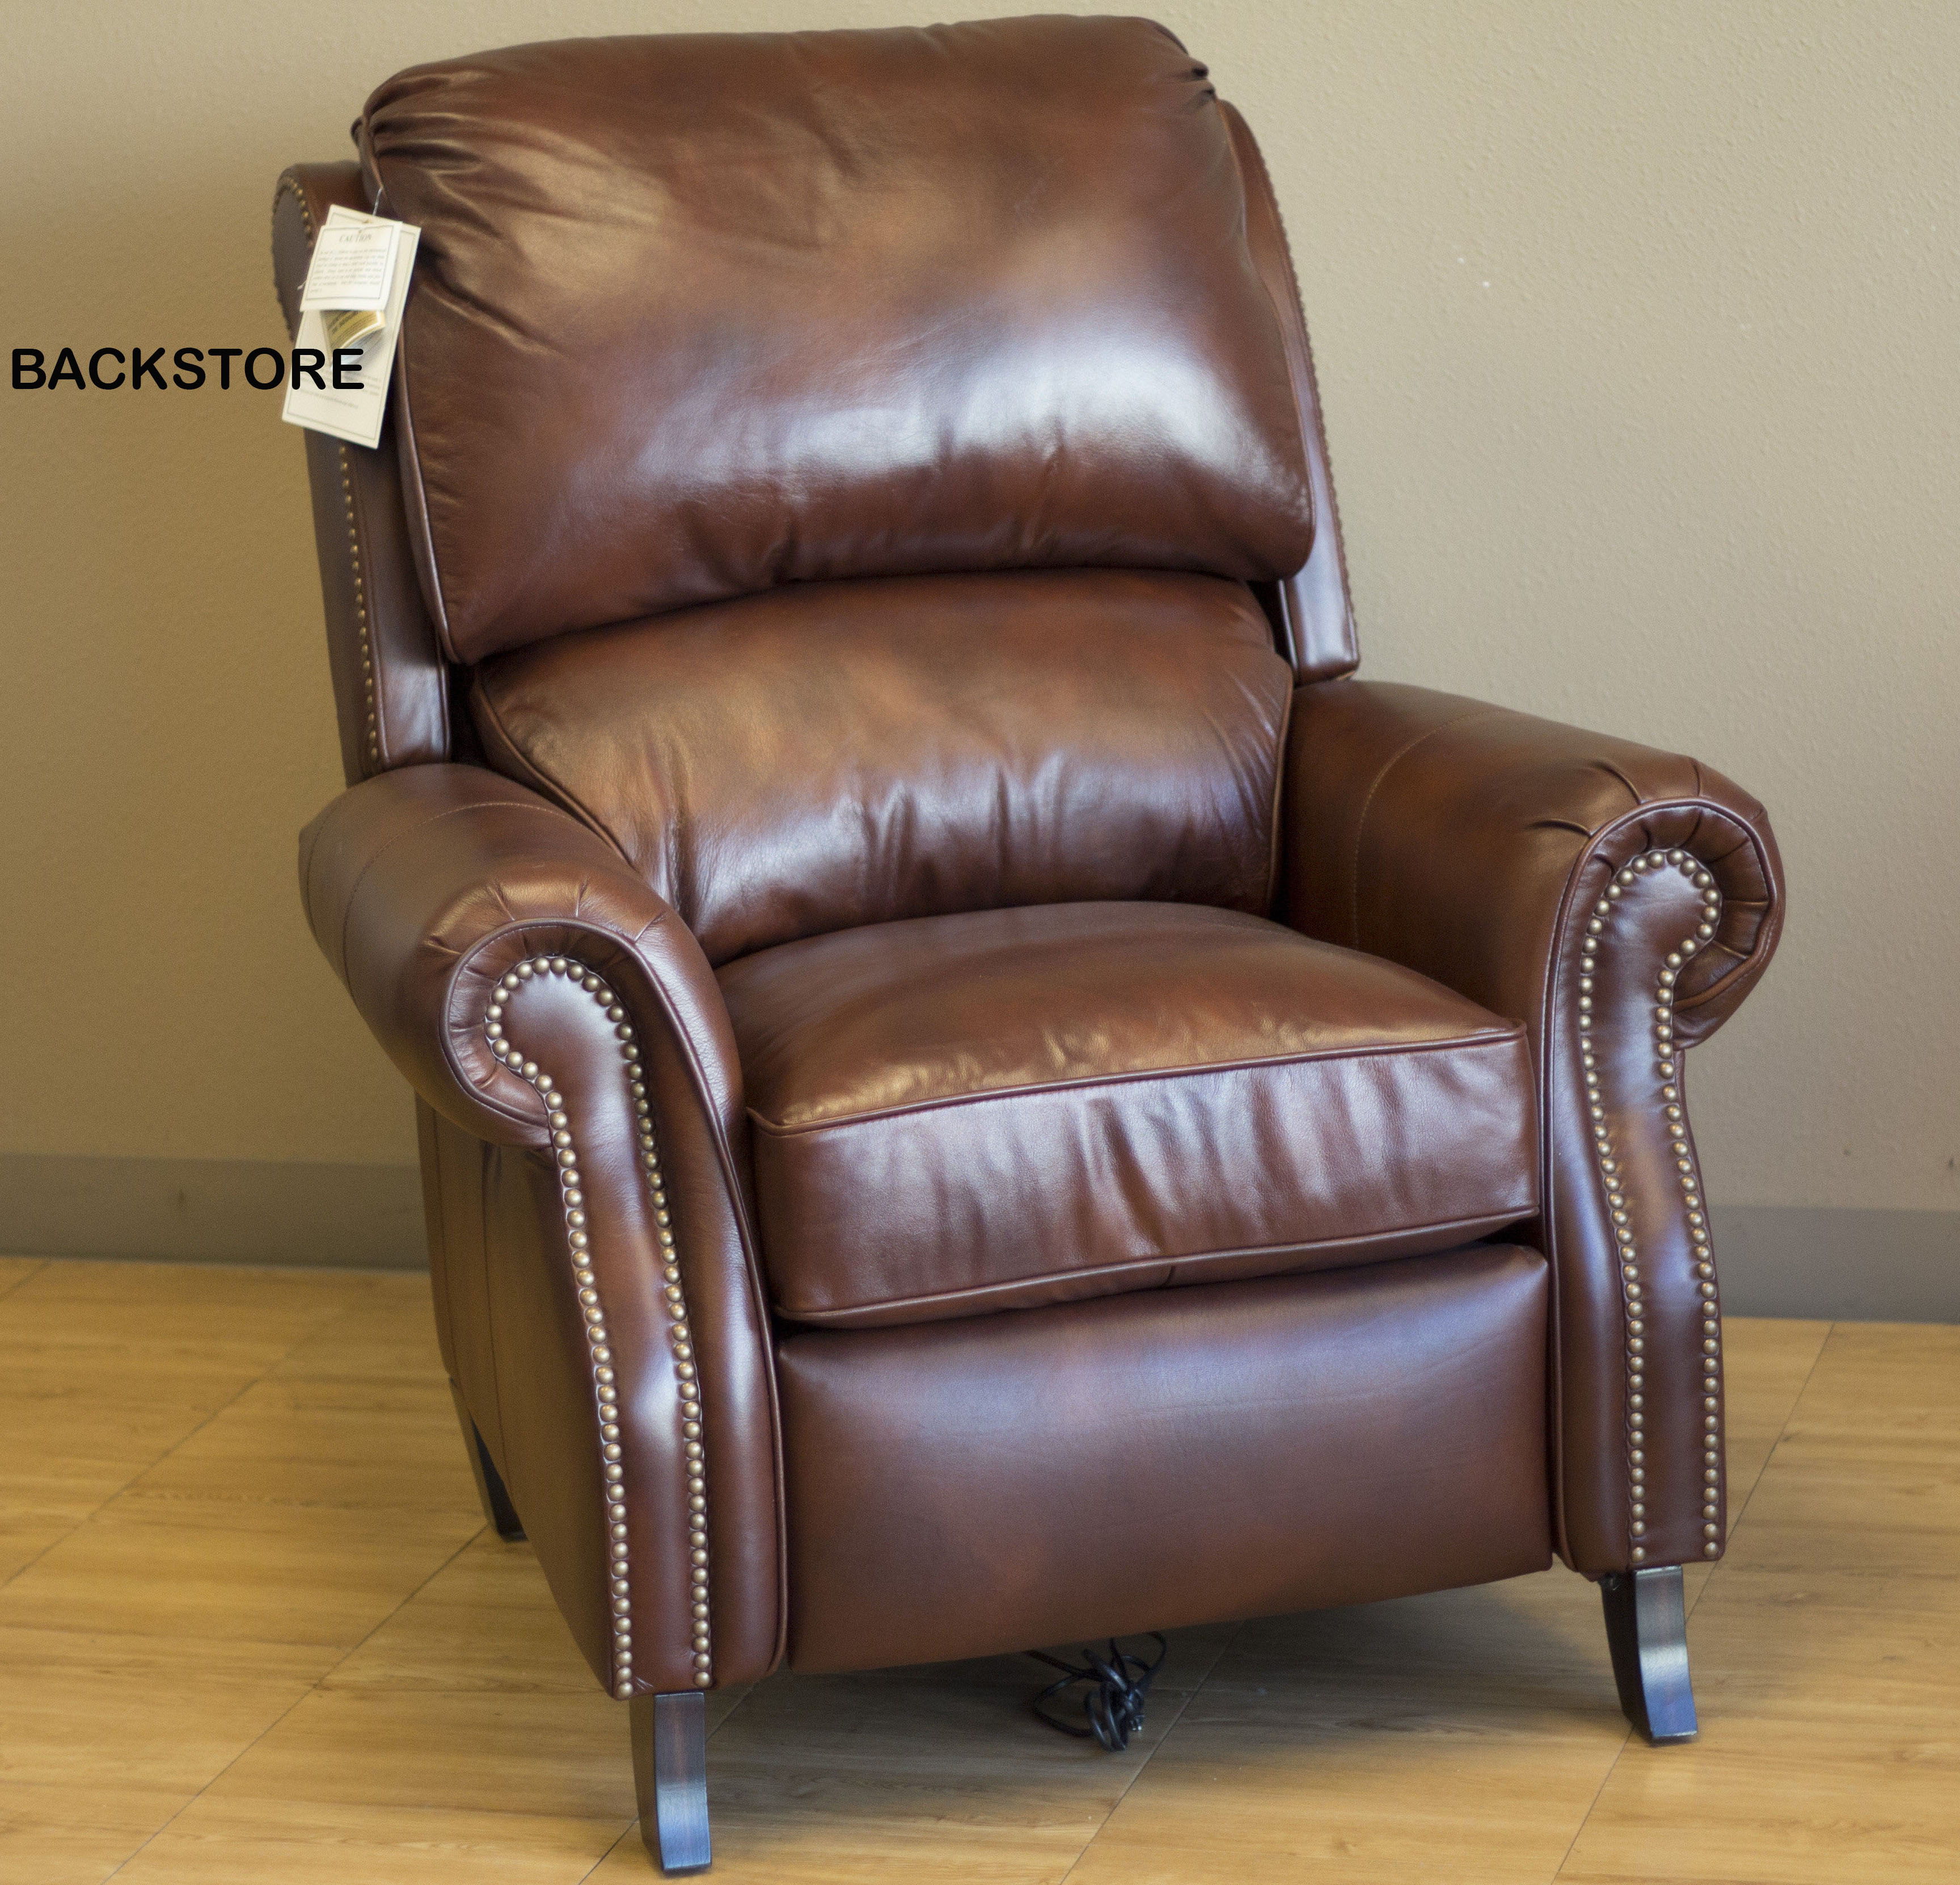 barcalounger churchill ii recliner chair leather. Black Bedroom Furniture Sets. Home Design Ideas